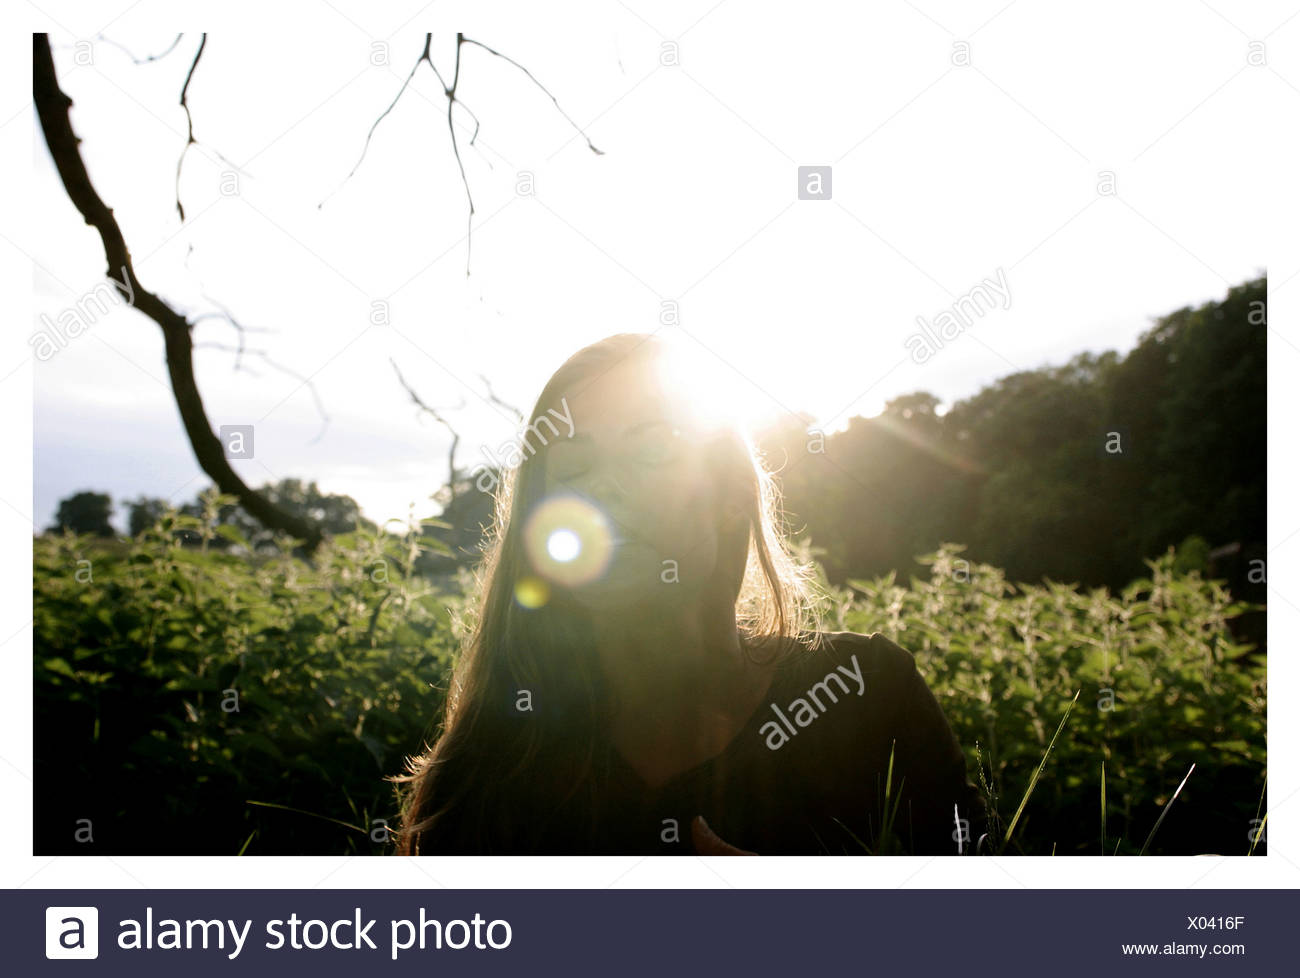 A woman standing with her eyes closed the sun shining in the background - Stock Image